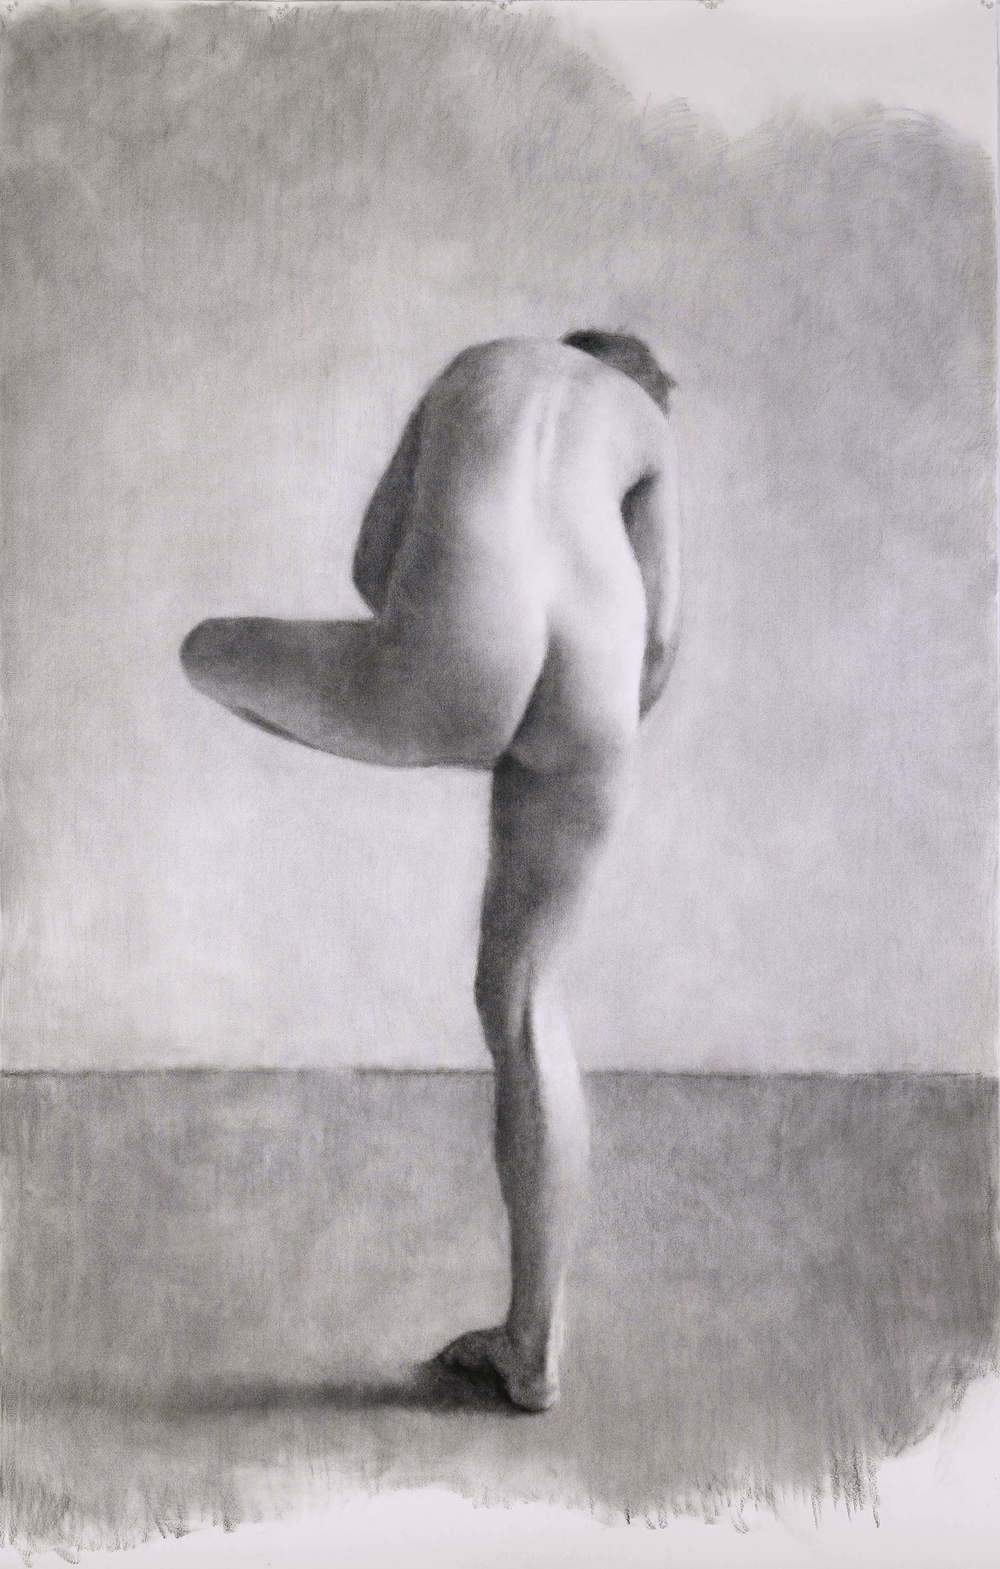 Drawing (Nude 106), 2010, willow charcoal on Fabriano paper, 2200 x 1400mm.